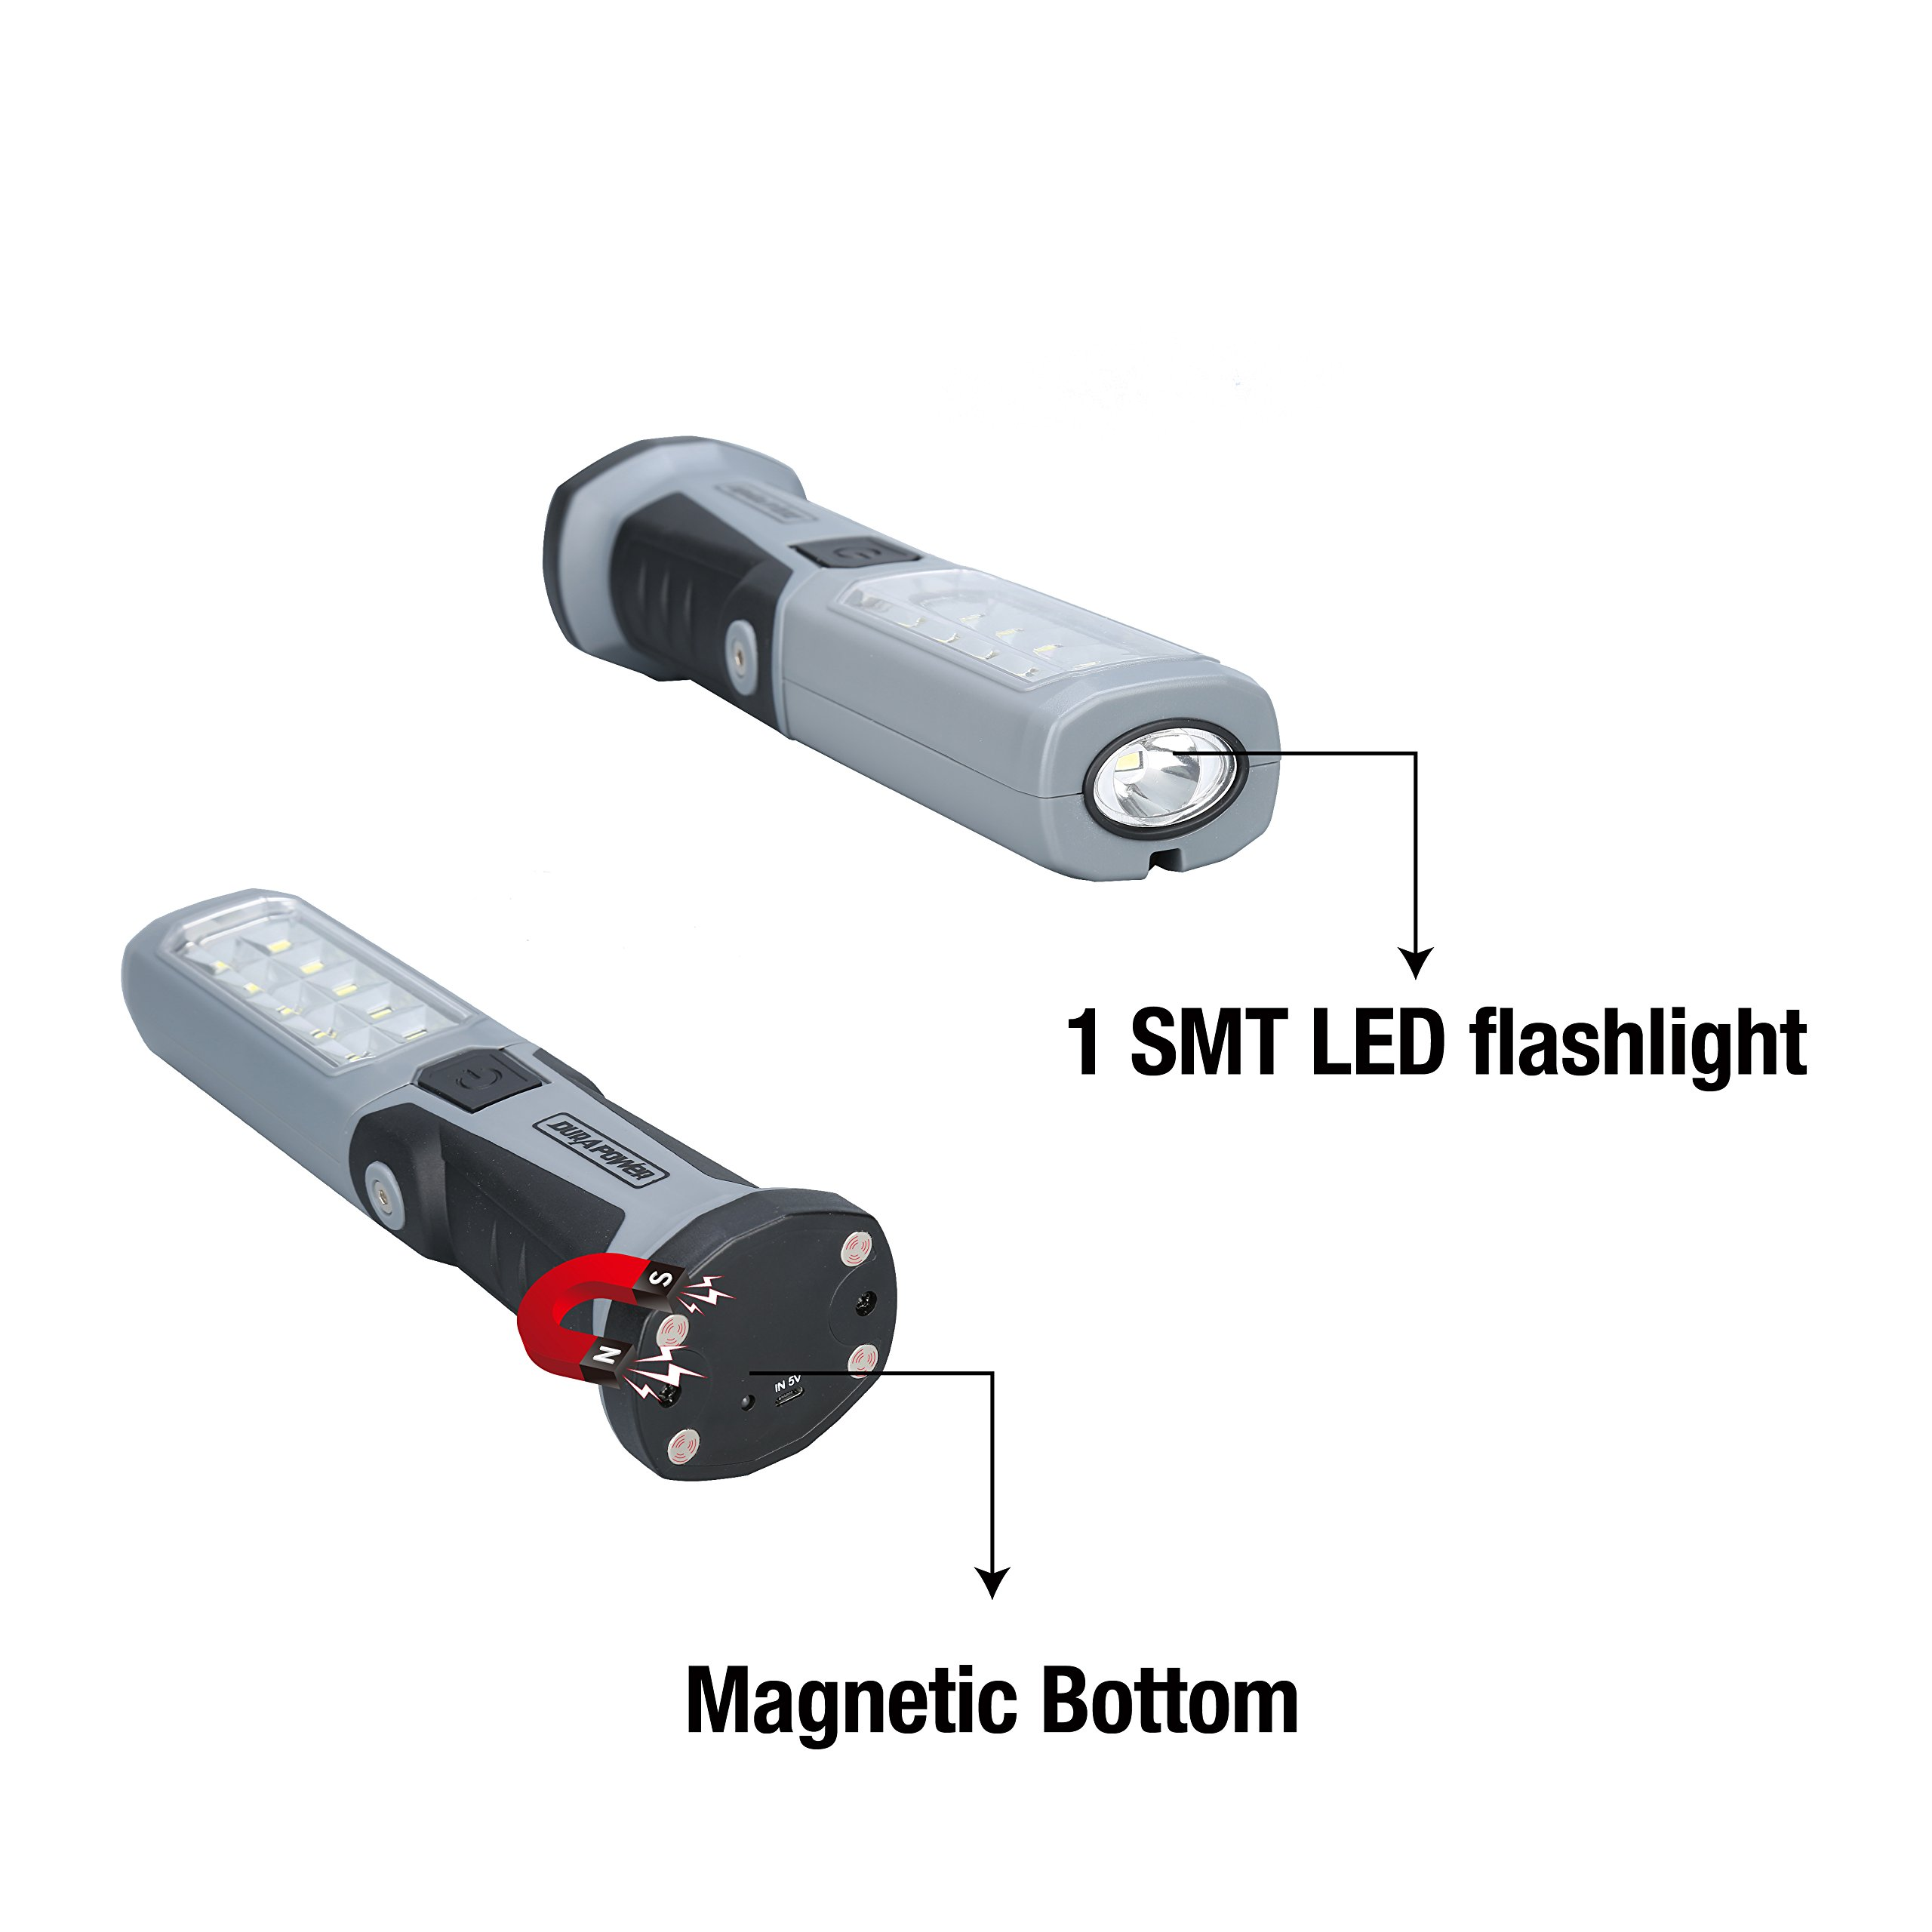 DP LED Work Light Rechargeable Hands-free Cordless Bright Flashlight With Powerful Magnetic Base Micro USB Charger 360 Degree Rotating Hook by DP (Image #4)